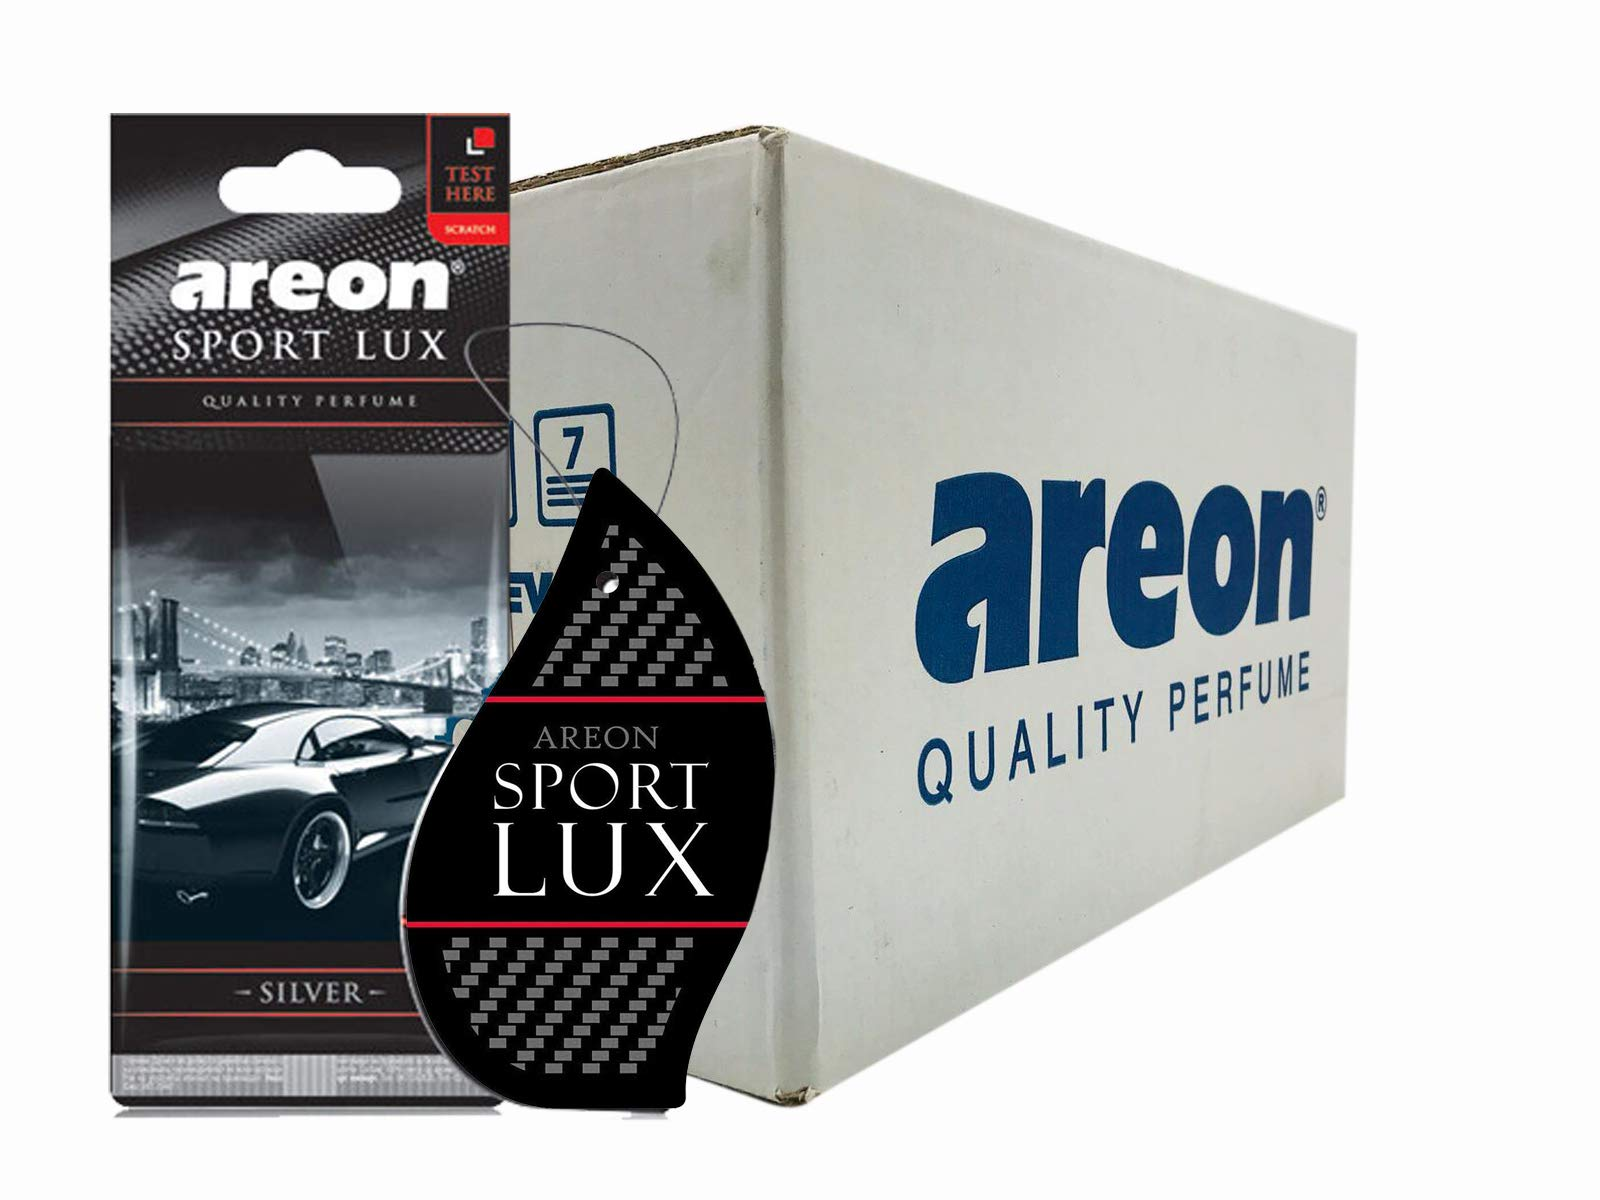 Areon Sport LUX Quality Perfume/Cologne Cardboard Car & Home Air Freshener (180, Silver)